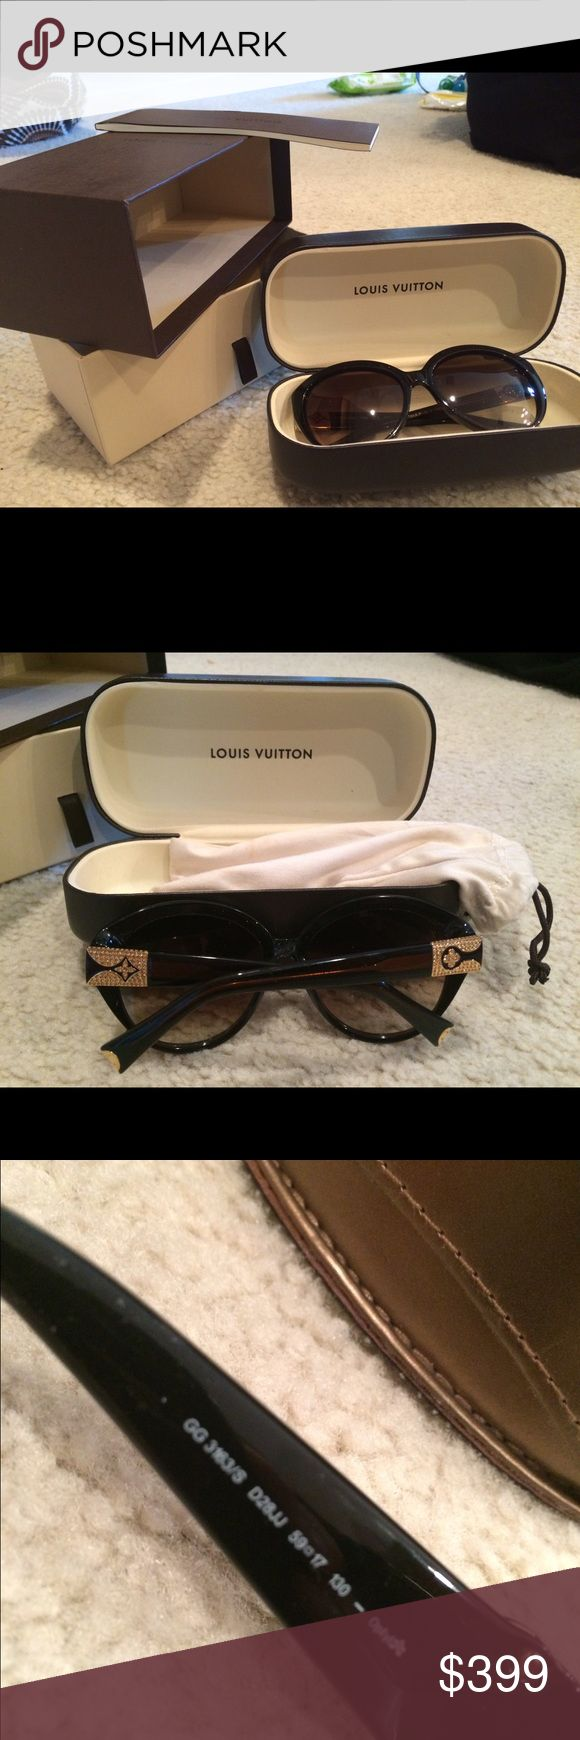 Authentic Louis Vuitton glasses Never been worn, with box, case a dust bag. Louis Vuitton Accessories Glasses